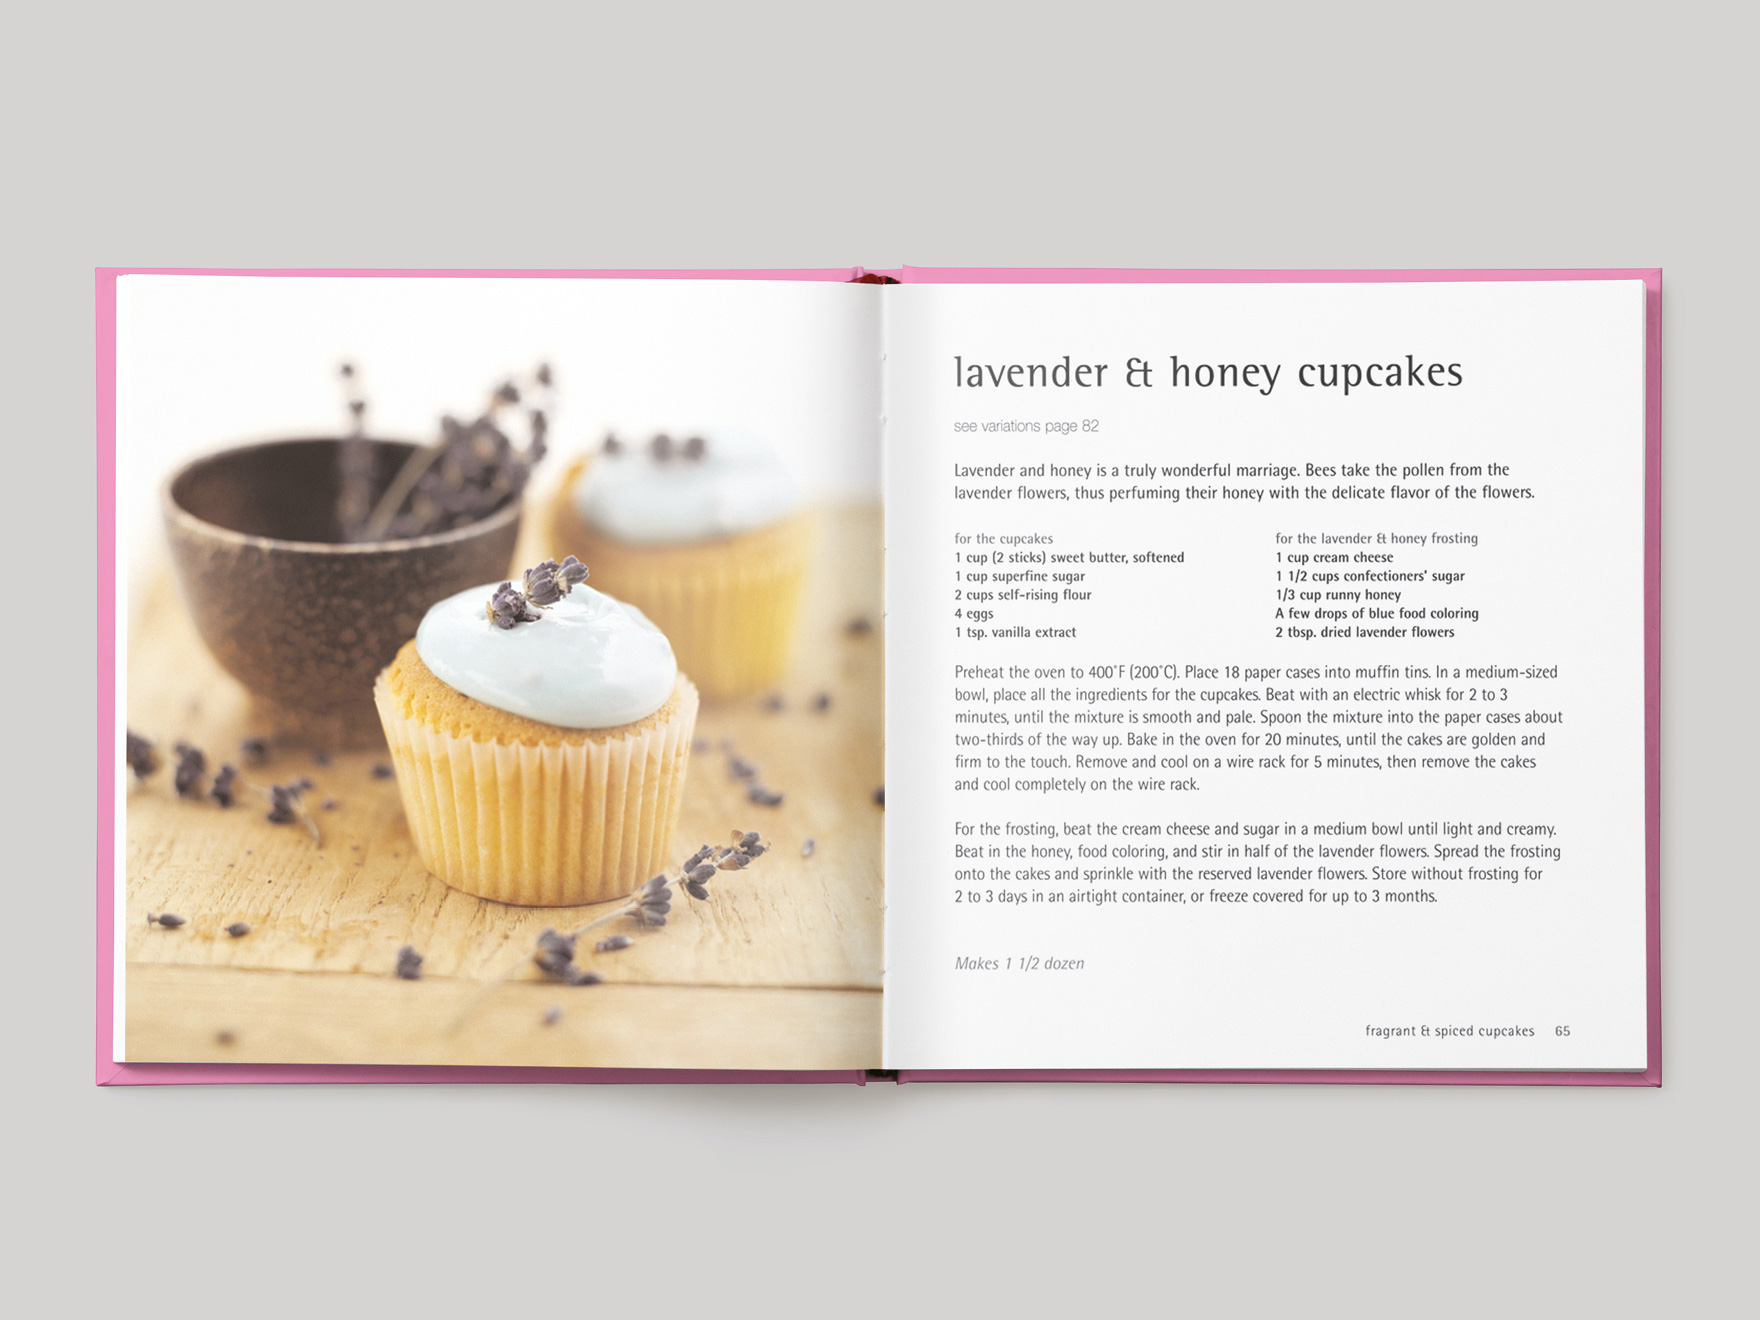 Inside pages from 500 Cupcakes showing a recipe for lavender and honey cupcakes